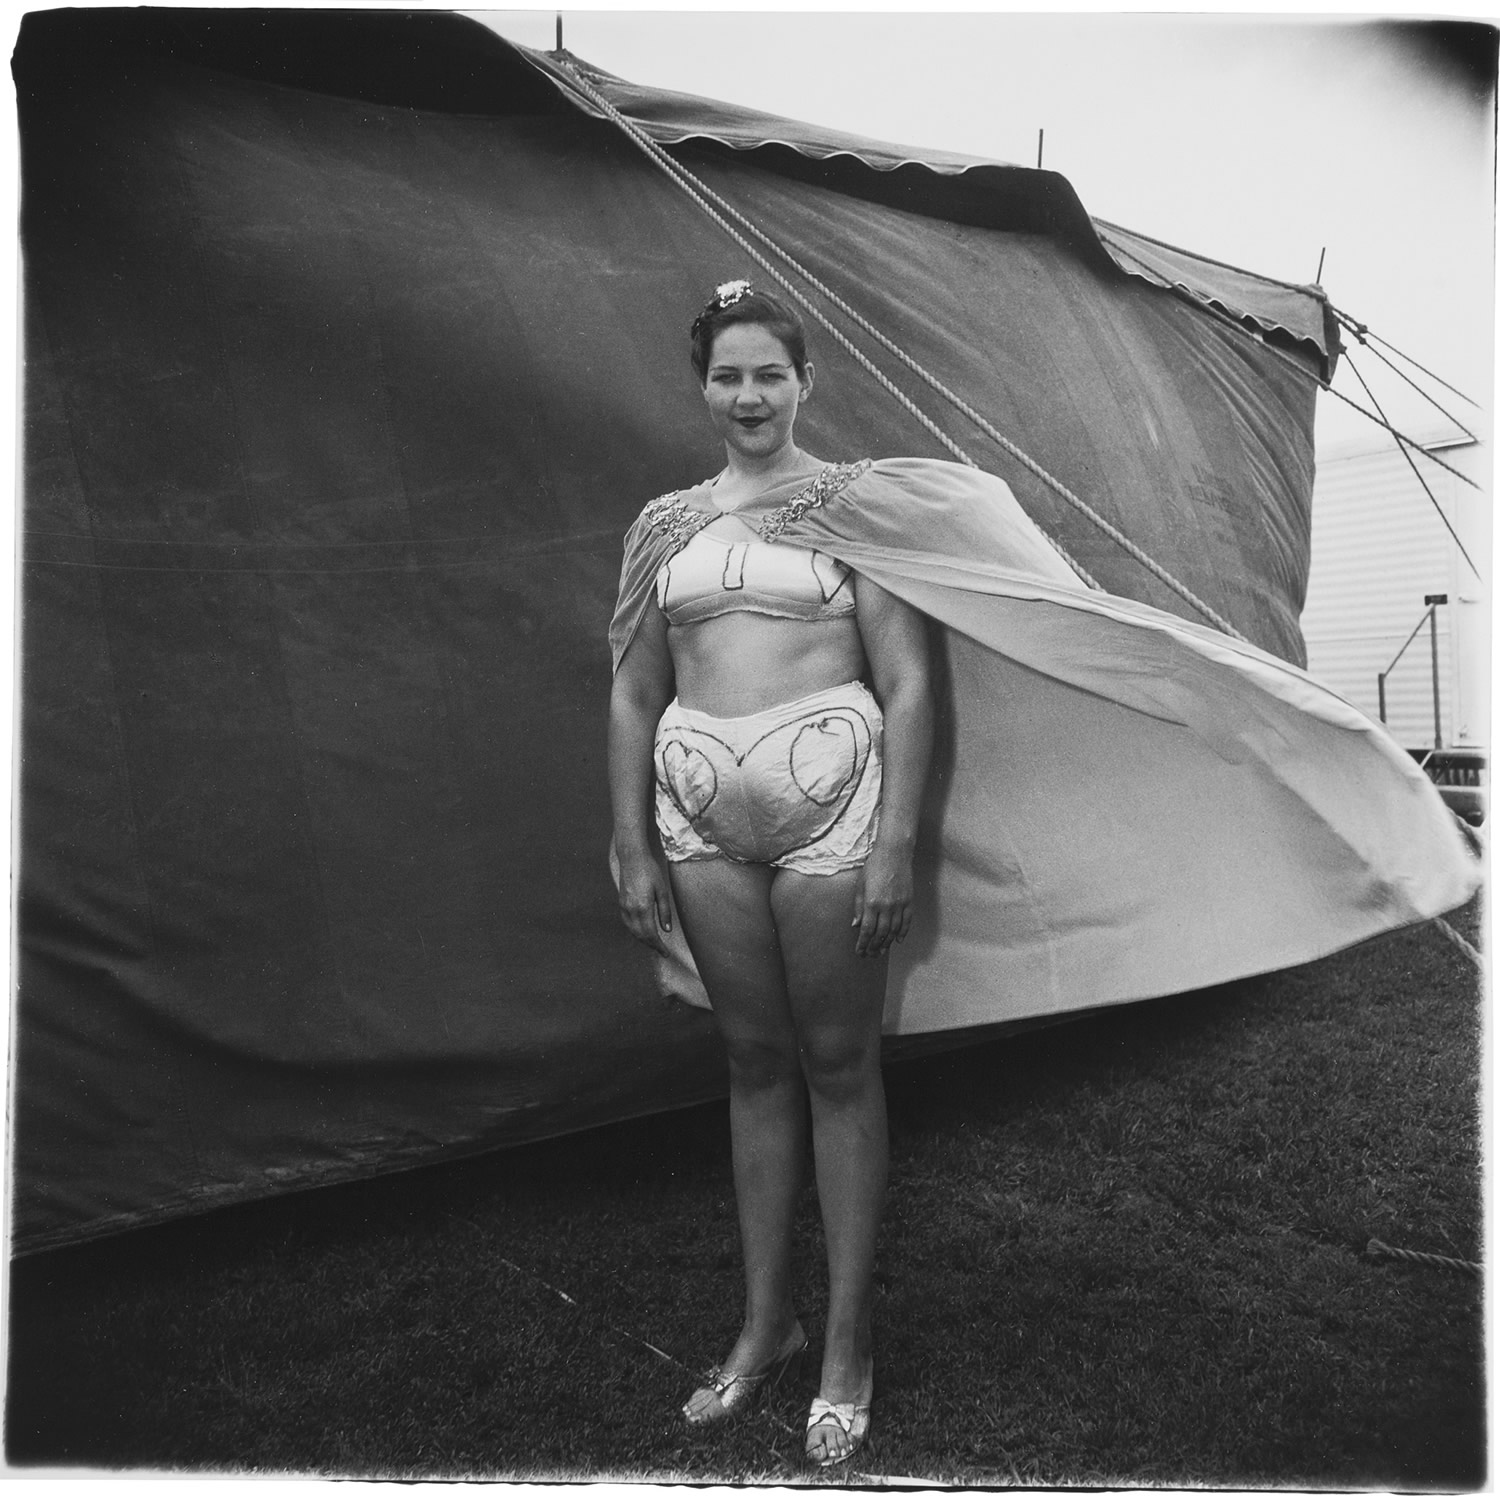 Girl in her Circus Costume, Maryland, 1970